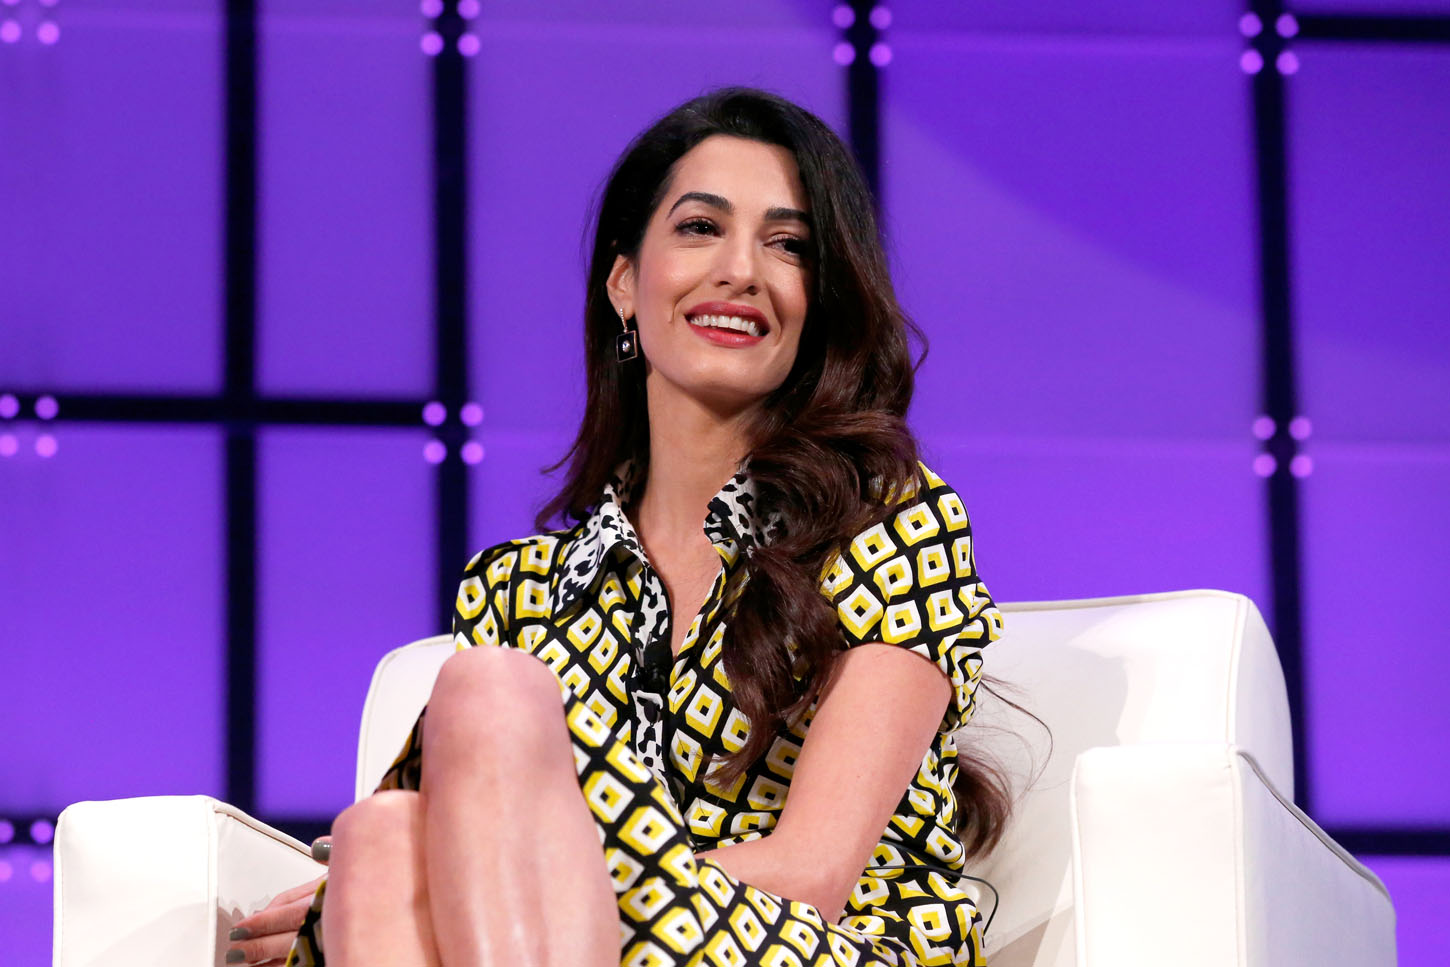 SAN JOSE, CA - FEBRUARY 23:  International human rights attorney Amal Clooney speaks onstage at the Watermark Conference for Women 2018 at San Jose Convention Center on February 23, 2018 in San Jose, California.  (Photo by Marla Aufmuth/Getty Images for Watermark Conference for Women 2018)